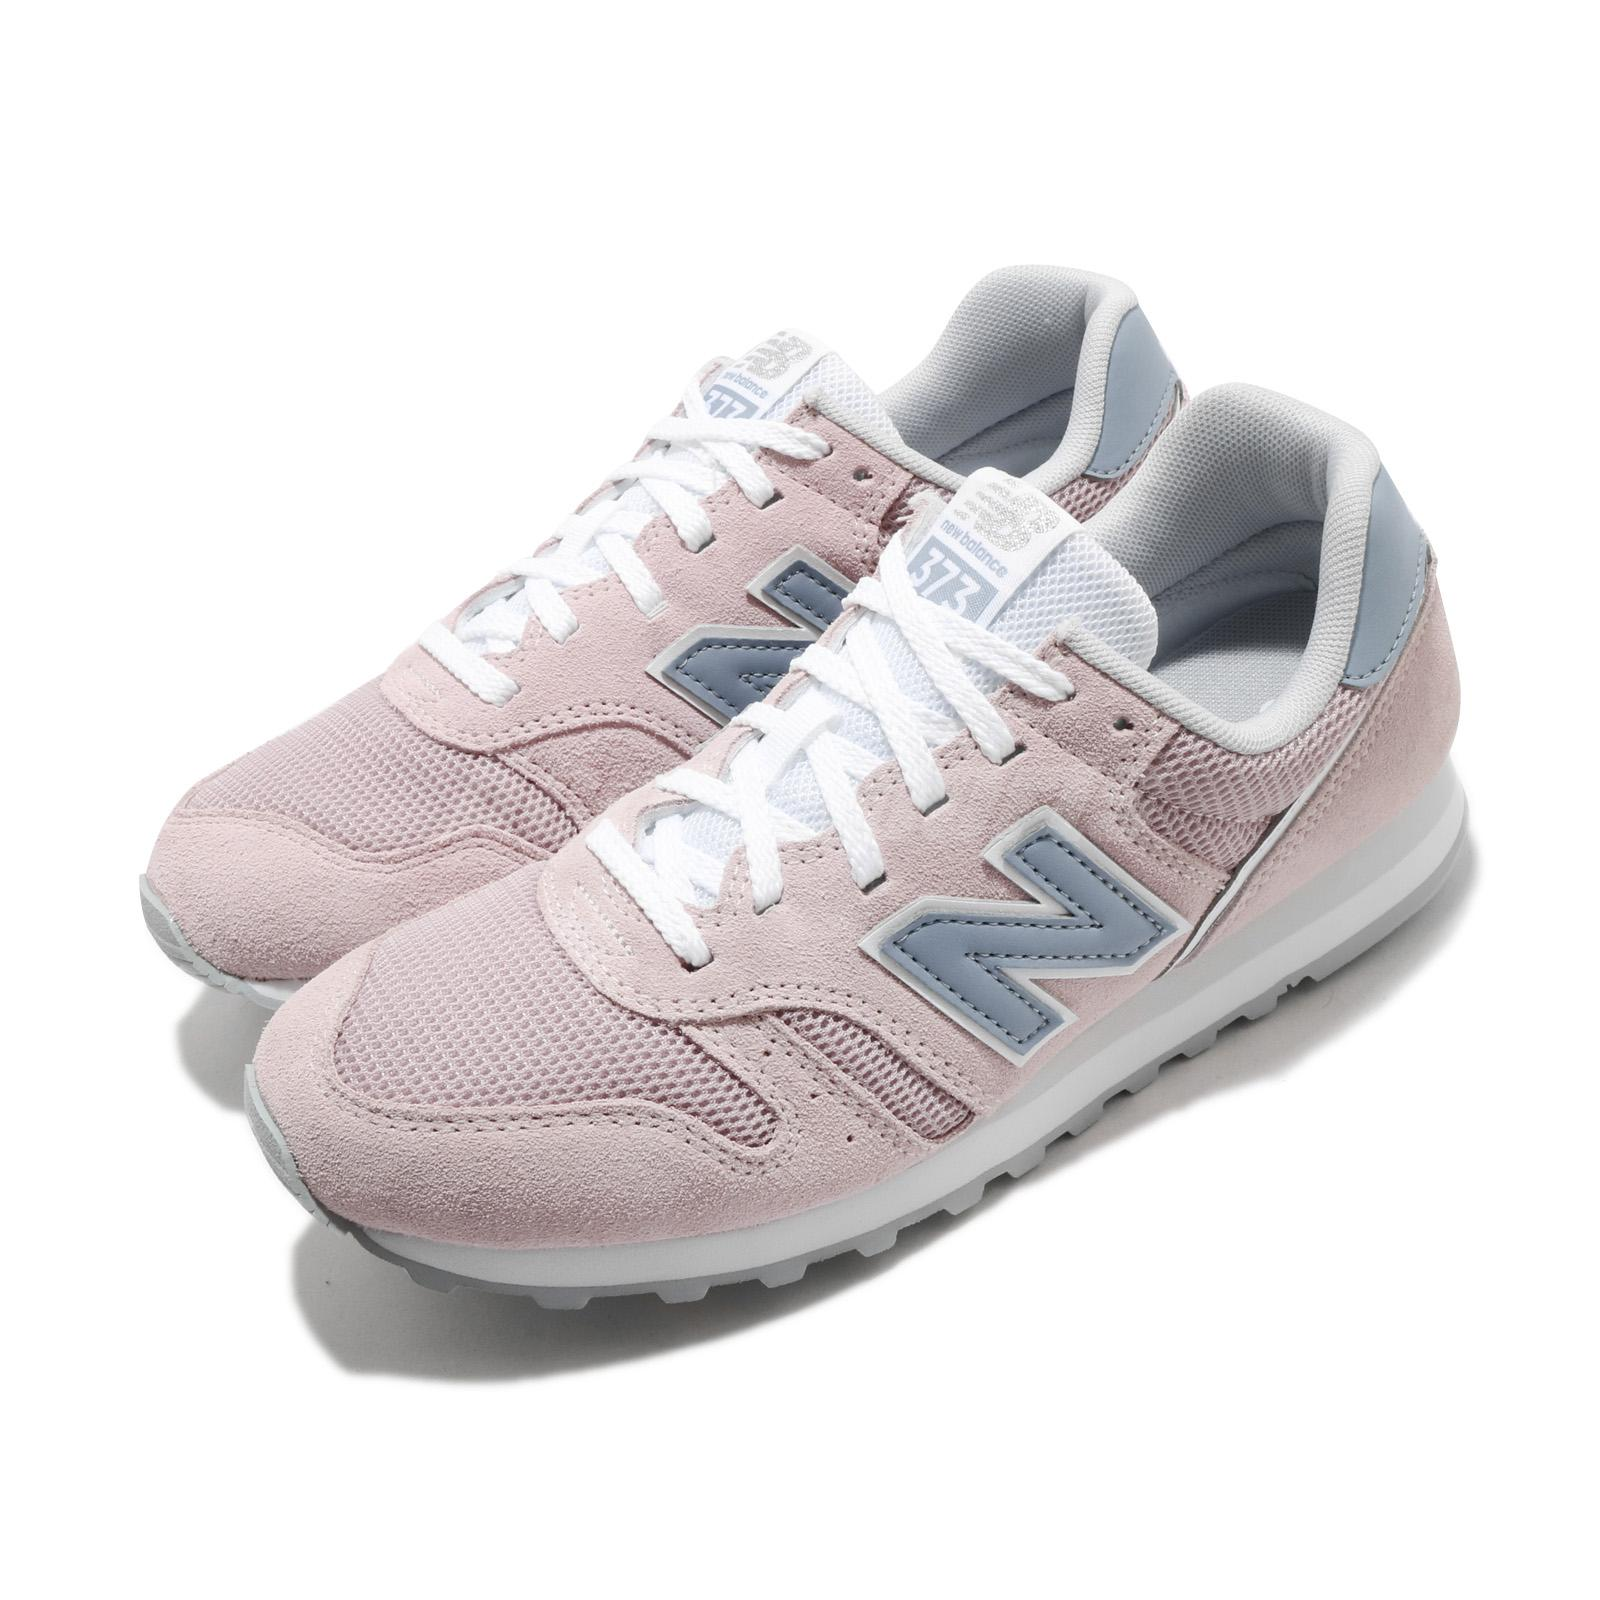 emitir hardware manga  New Balance 373 Pink Blue White Grey Women Casual Shoes Sneakers WL373DC2 B  | eBay